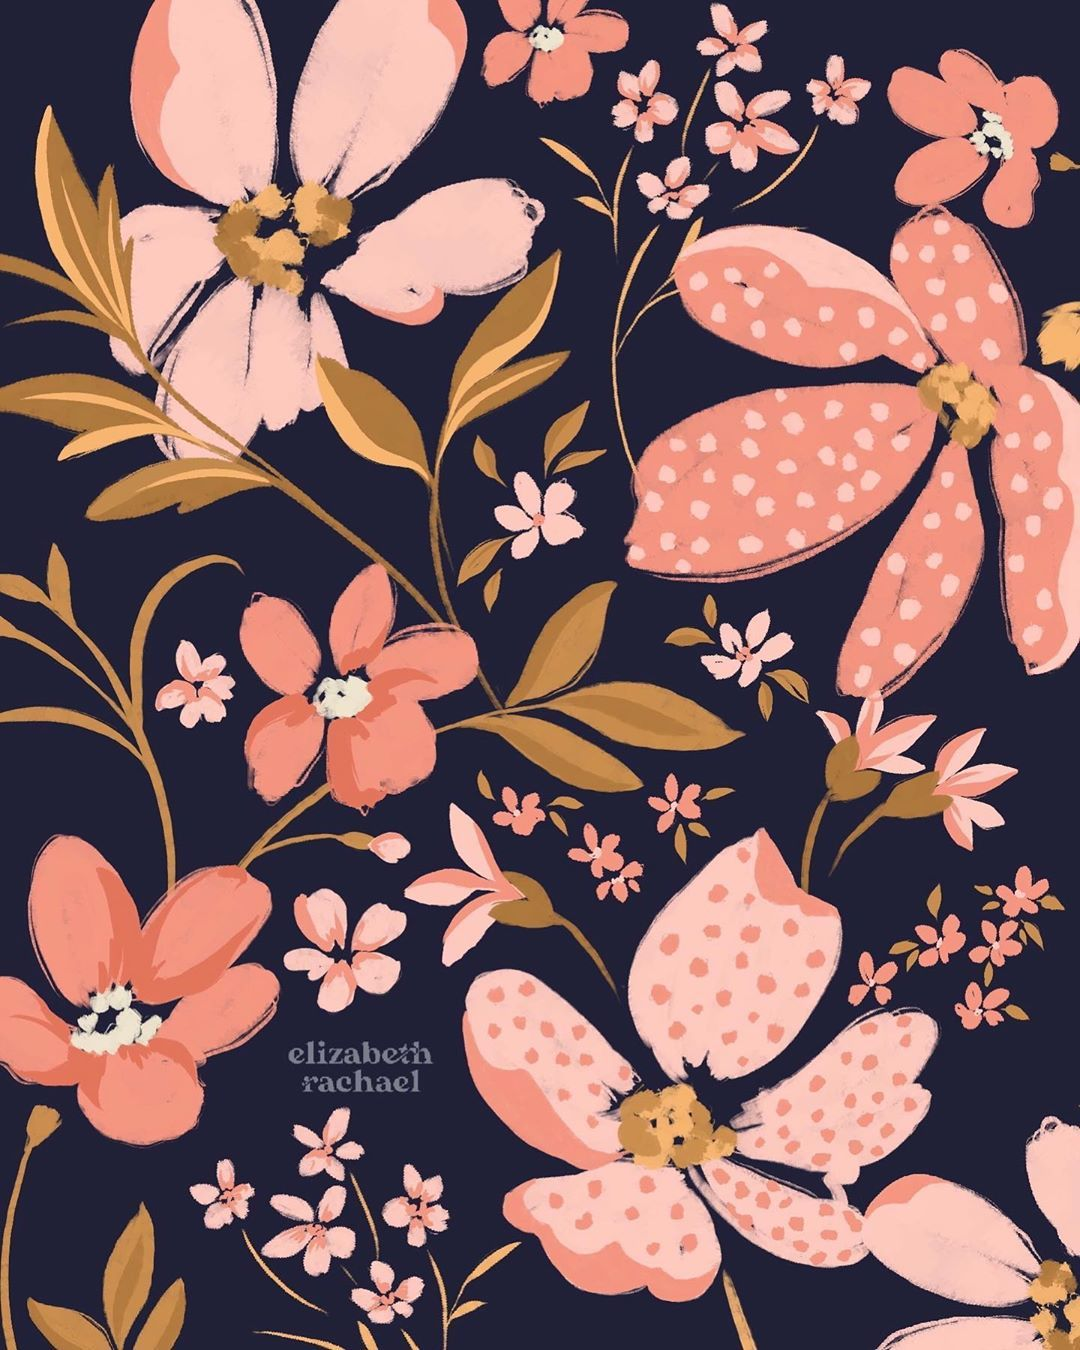 """Liz✨Print   Pattern   Textiles on Instagram: """"Happy Friday everyone! ✨ This started off as a little doodle, but now I'm kind of into it as an oversized floral? Or maybe I'm just really…"""""""